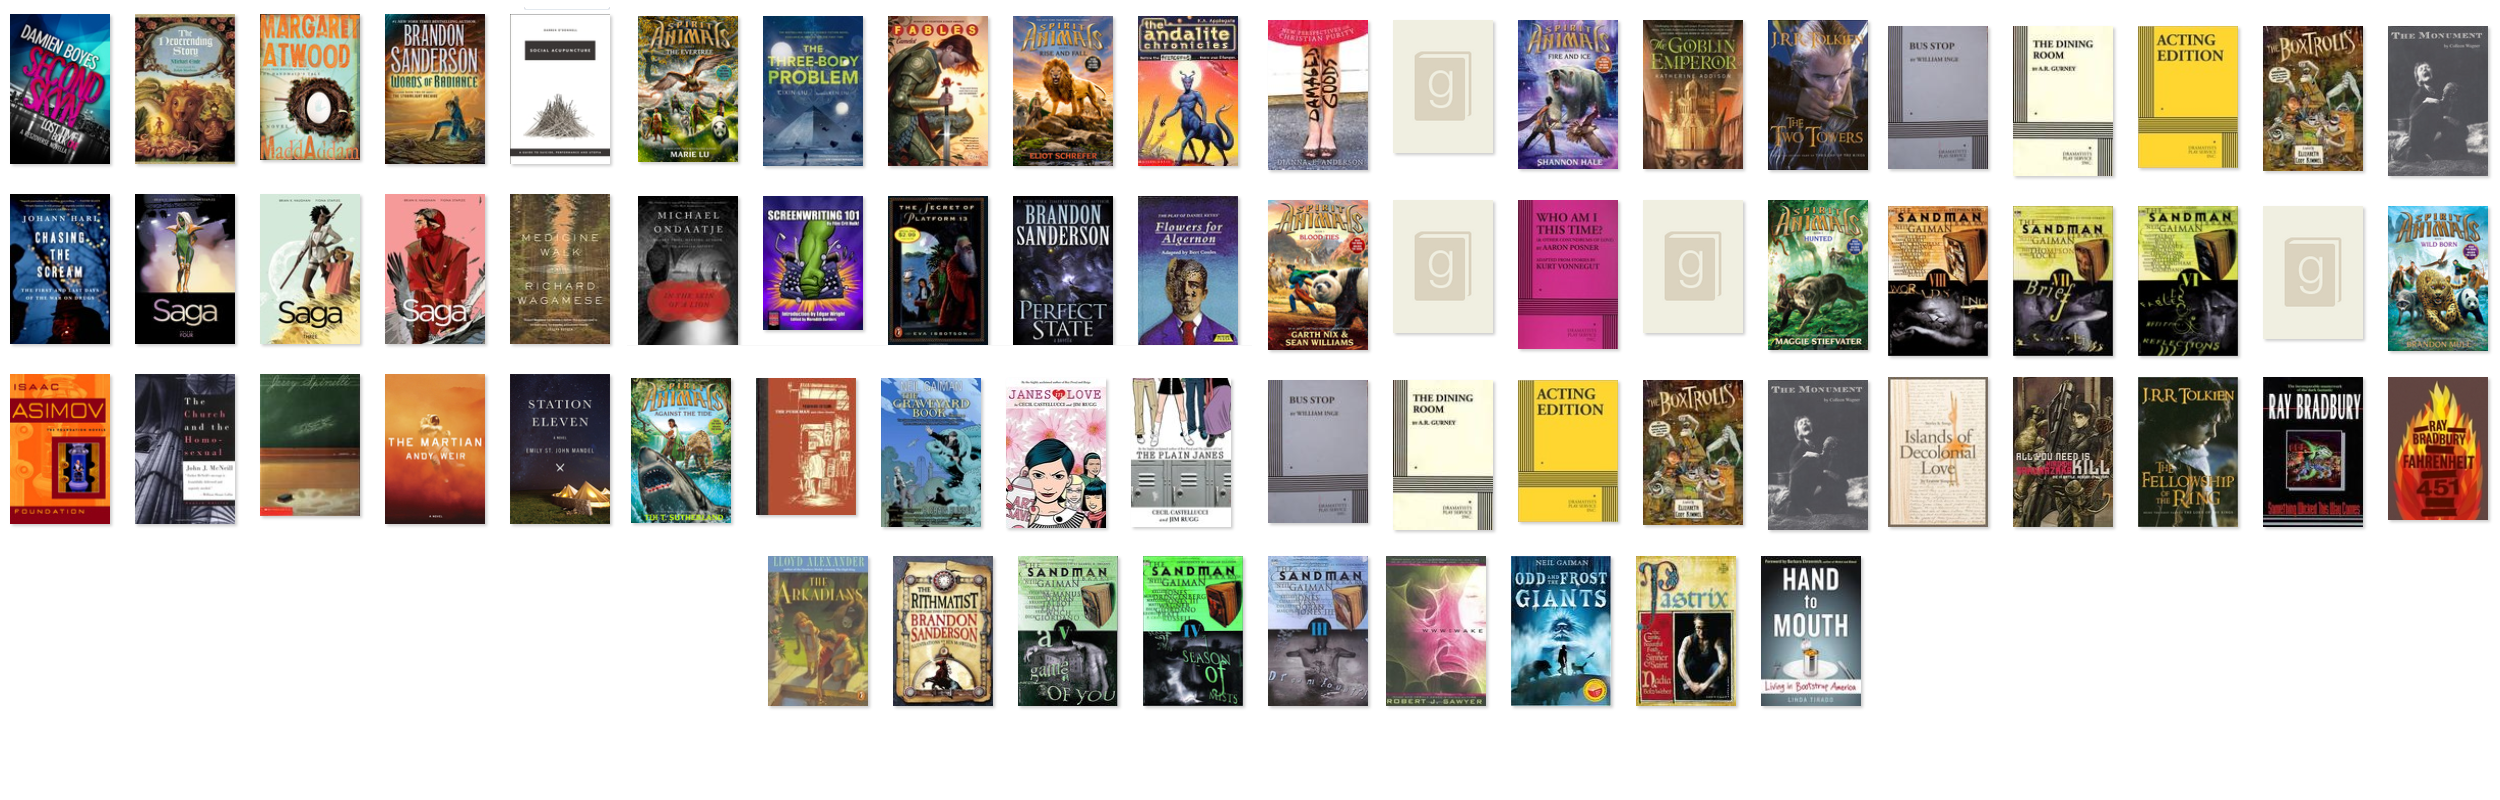 2015 Books list